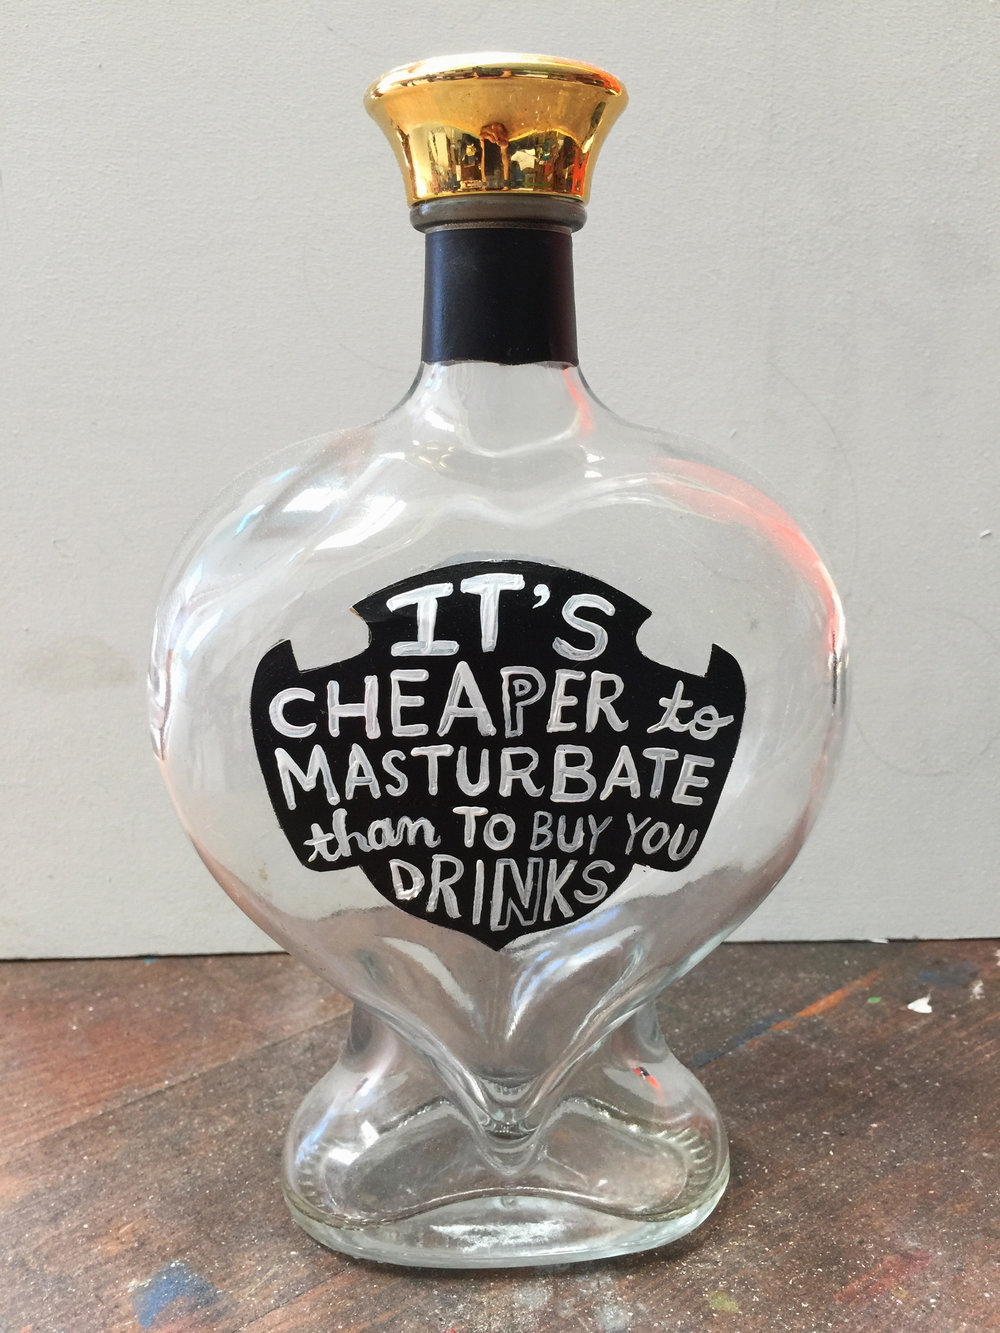 IT'S CHEAPER TO MASTURBATE